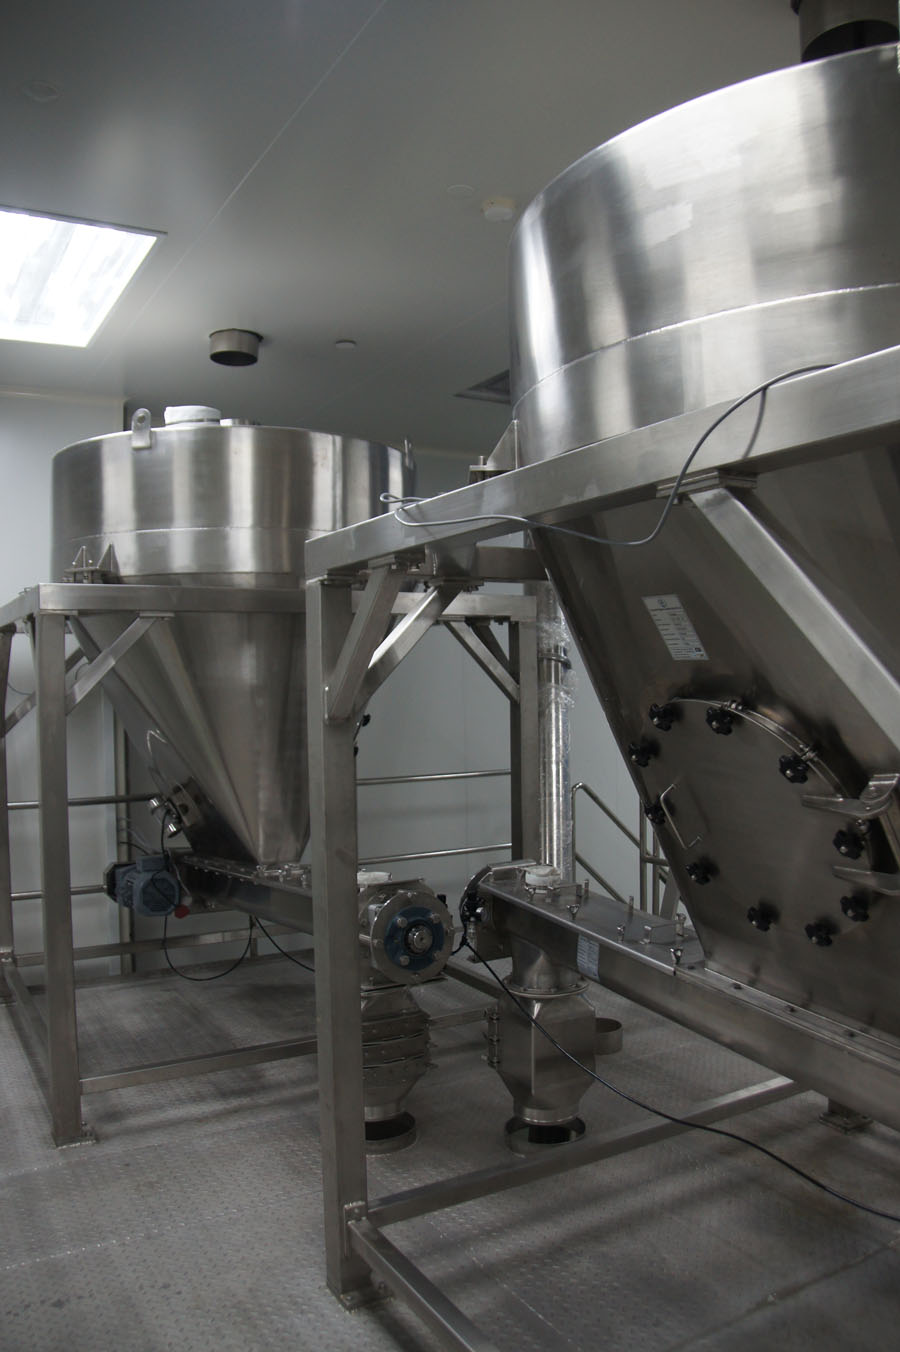 Image of Weighing hoppers / silos